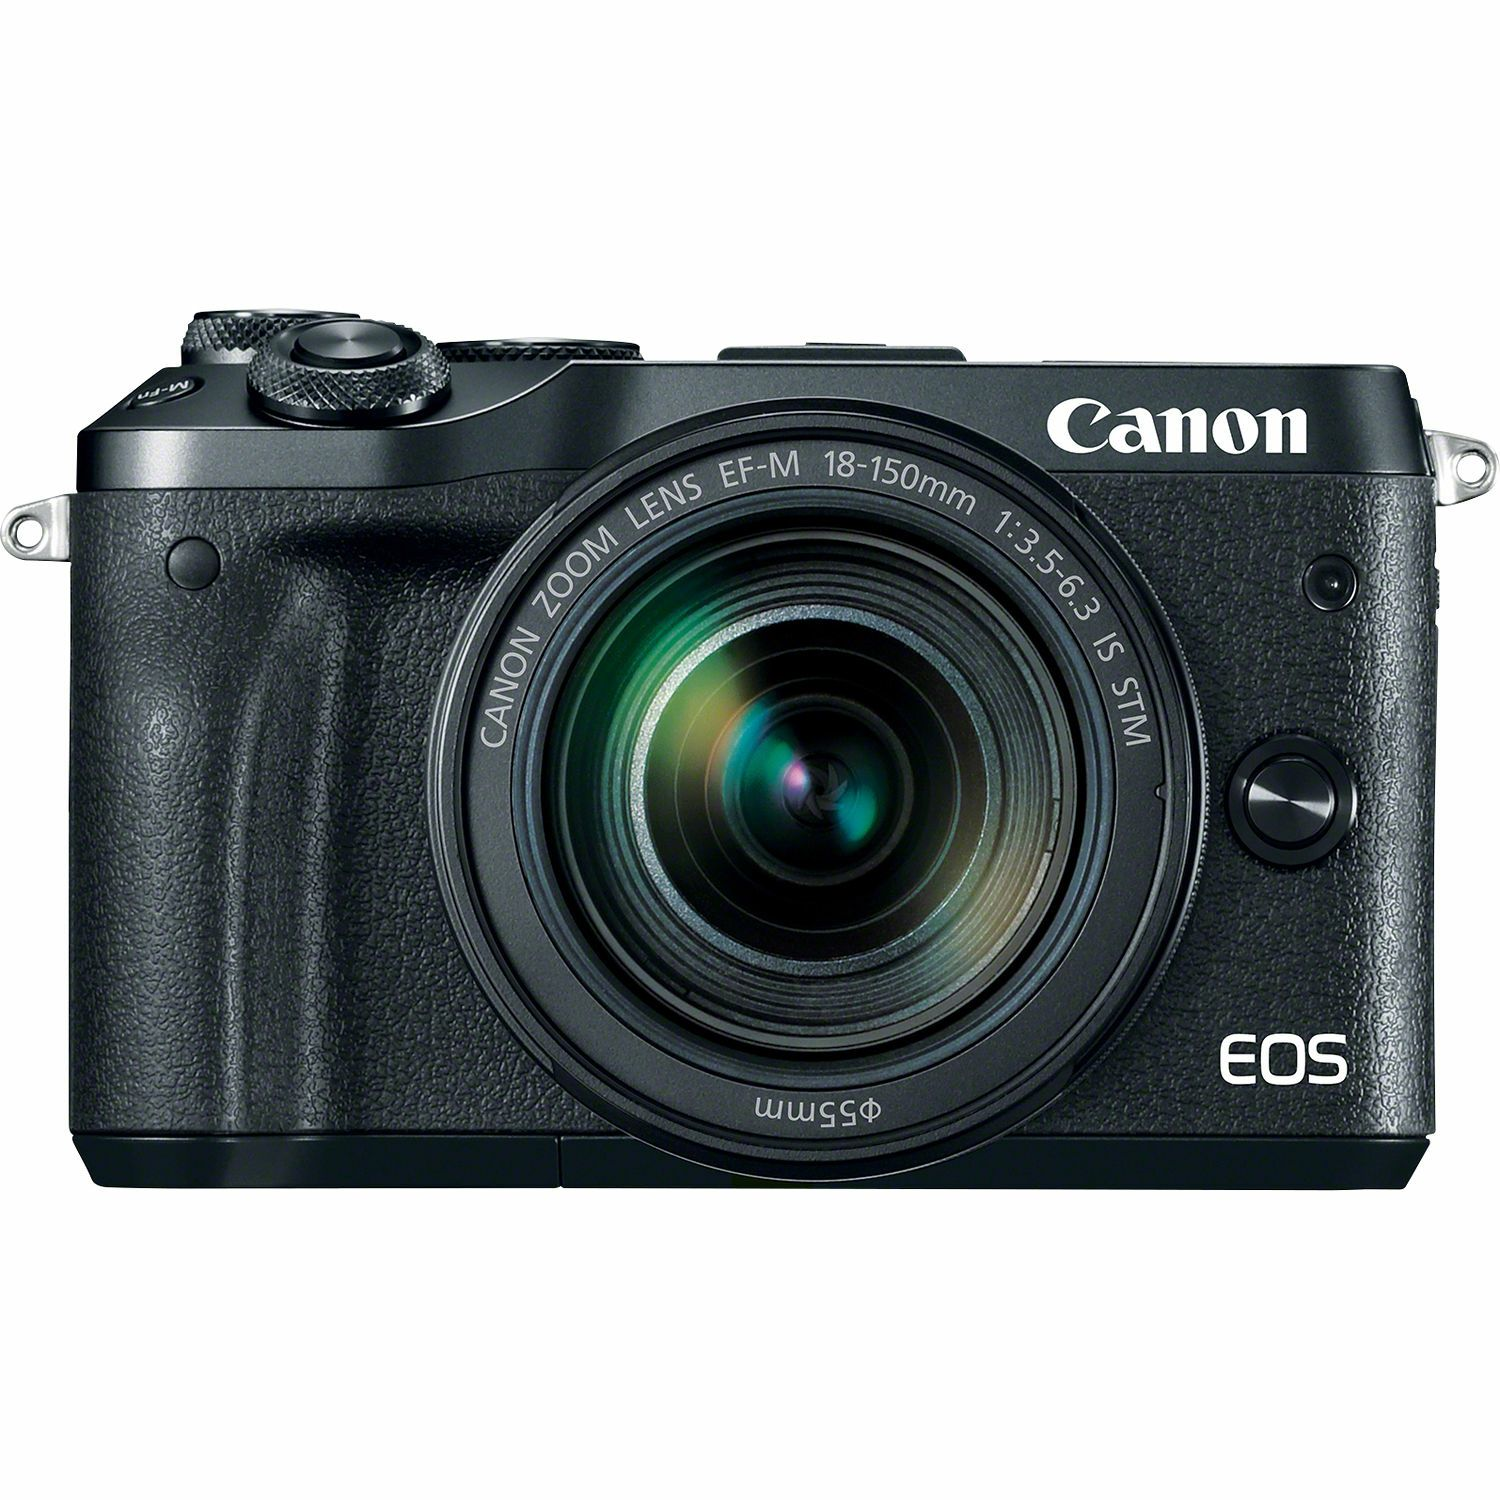 Canon EOS M6 + 18-150 IS STM Black Mirrorless Digitalni fotoaparat i objektiv EF-M 18-150mm f/3.5-6.3 (1724C022AA)